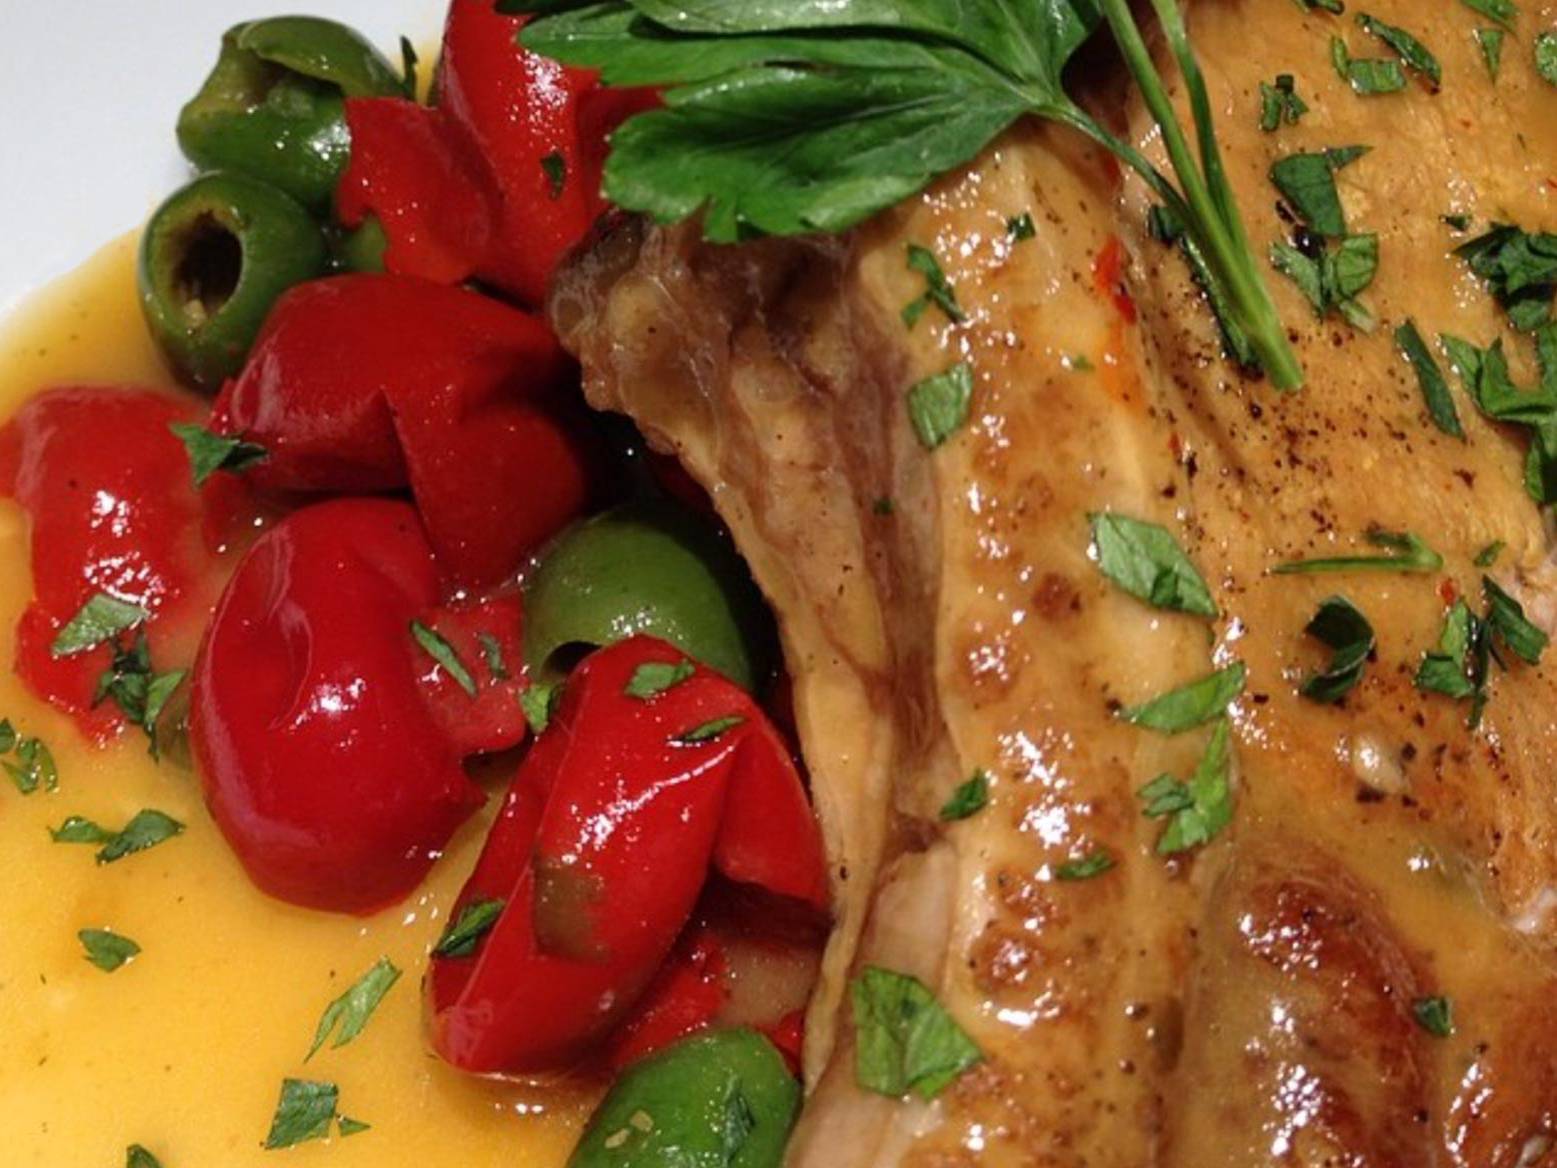 Pork chop and peppers dish.